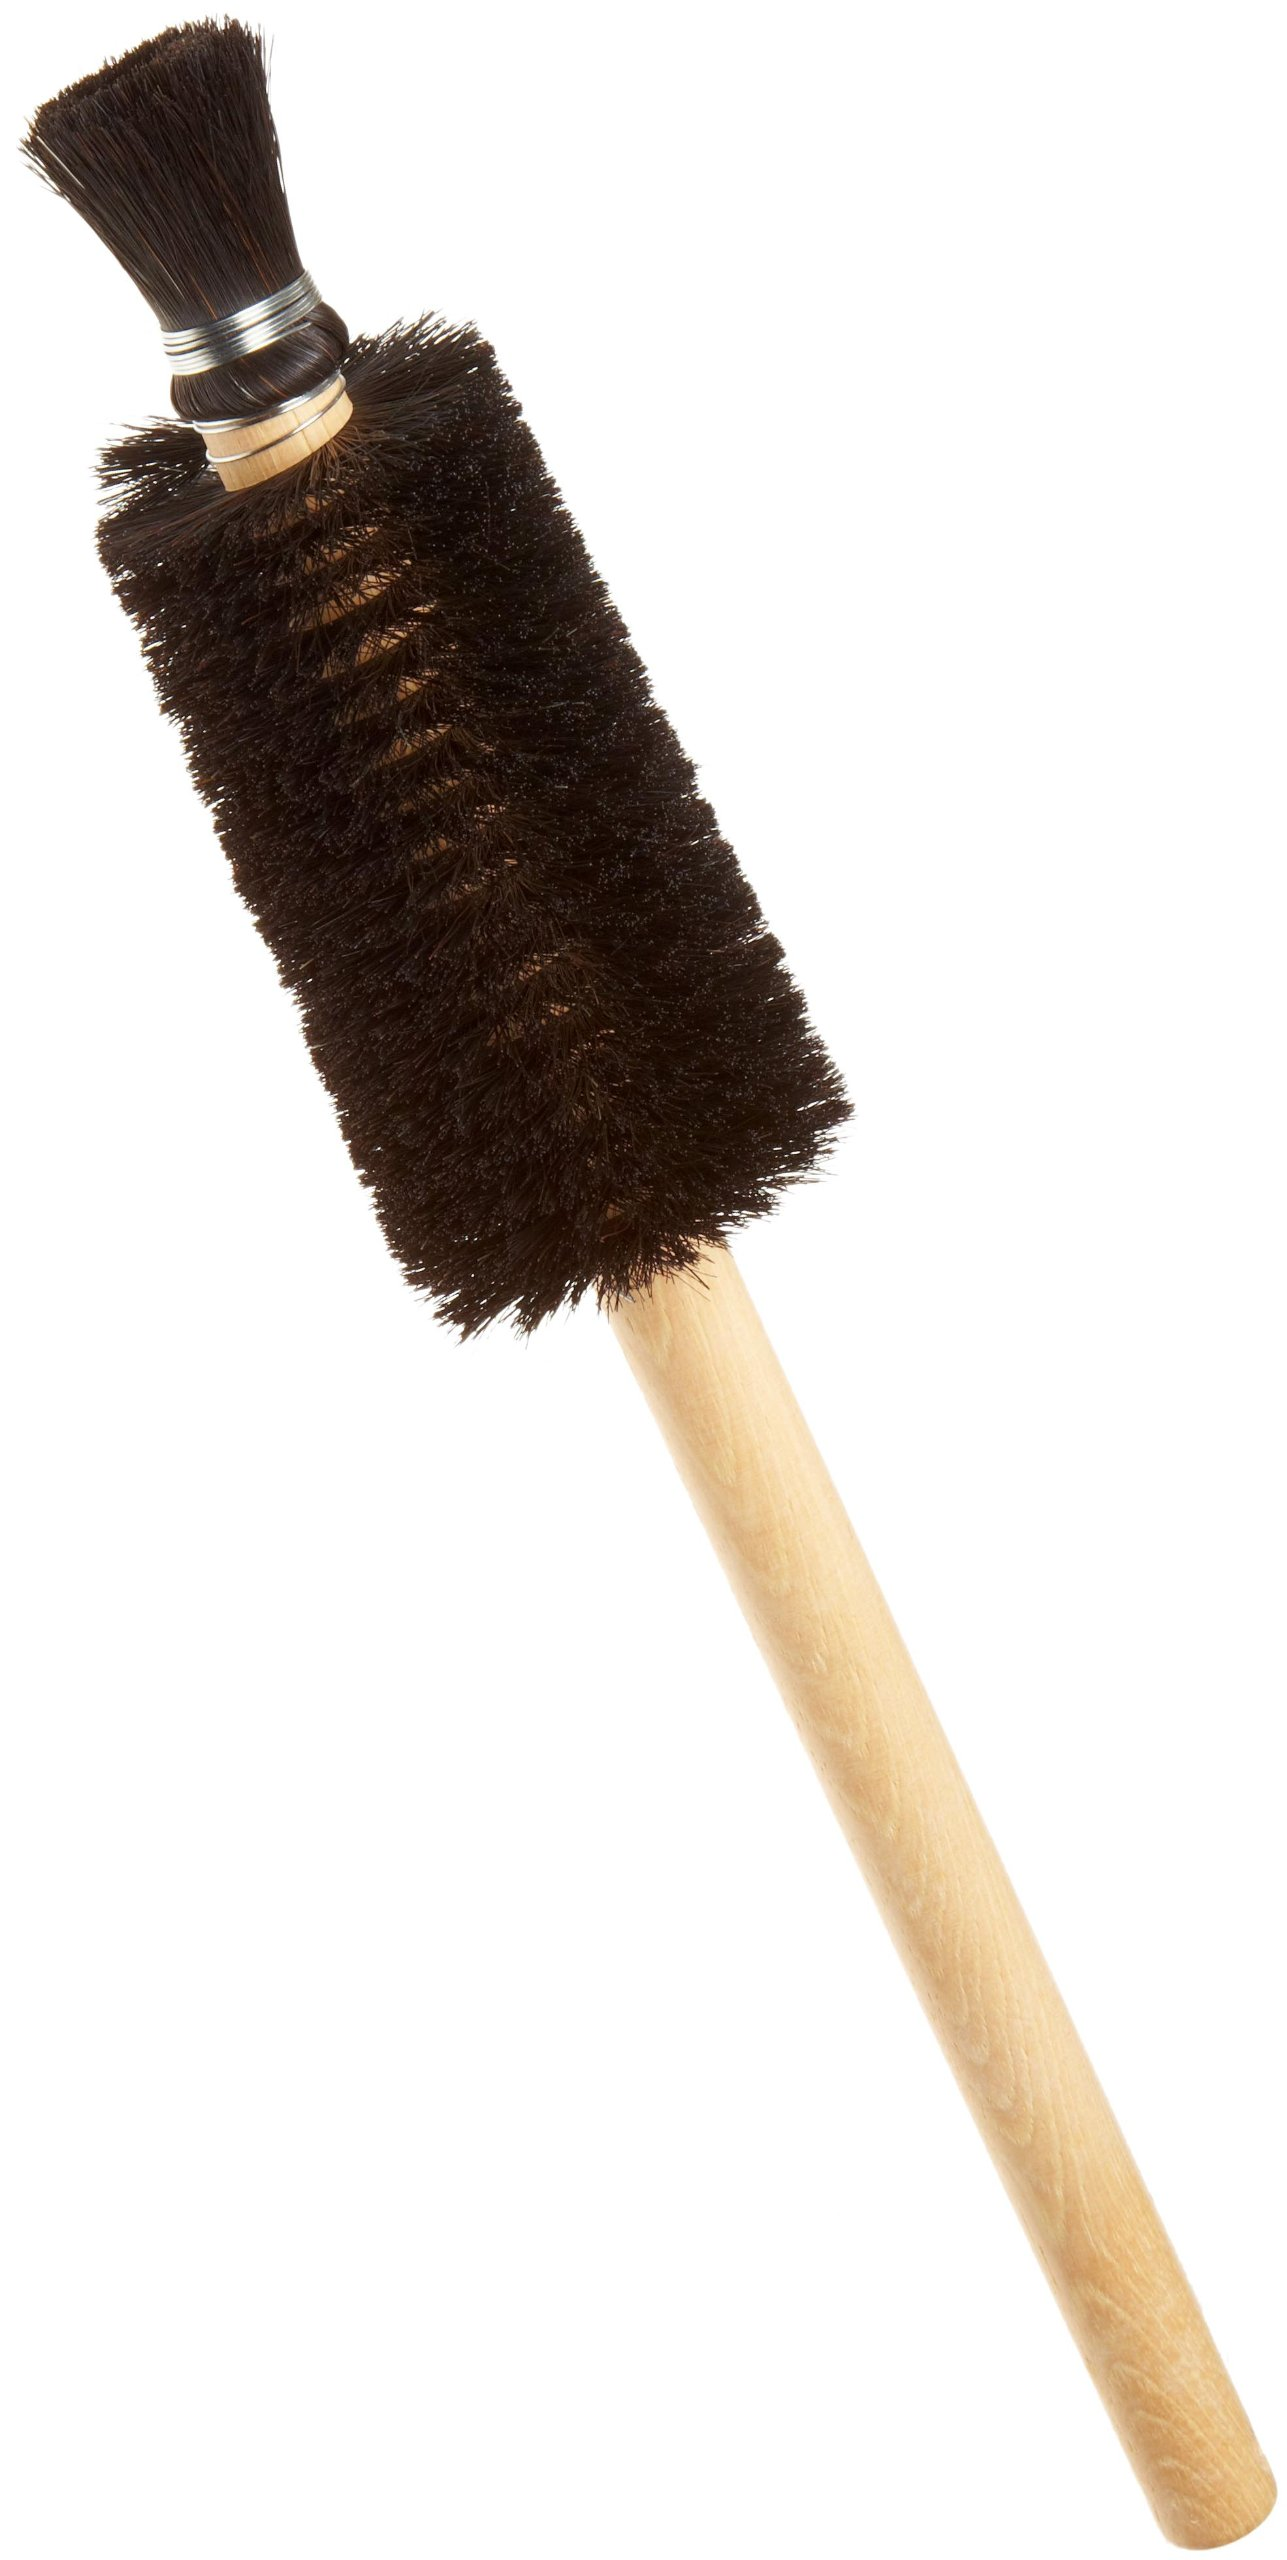 Weiler 99594 Horsehair Utility Brush with Wood Handle, 1'' Head Width, 16'' Overall Length, Natural